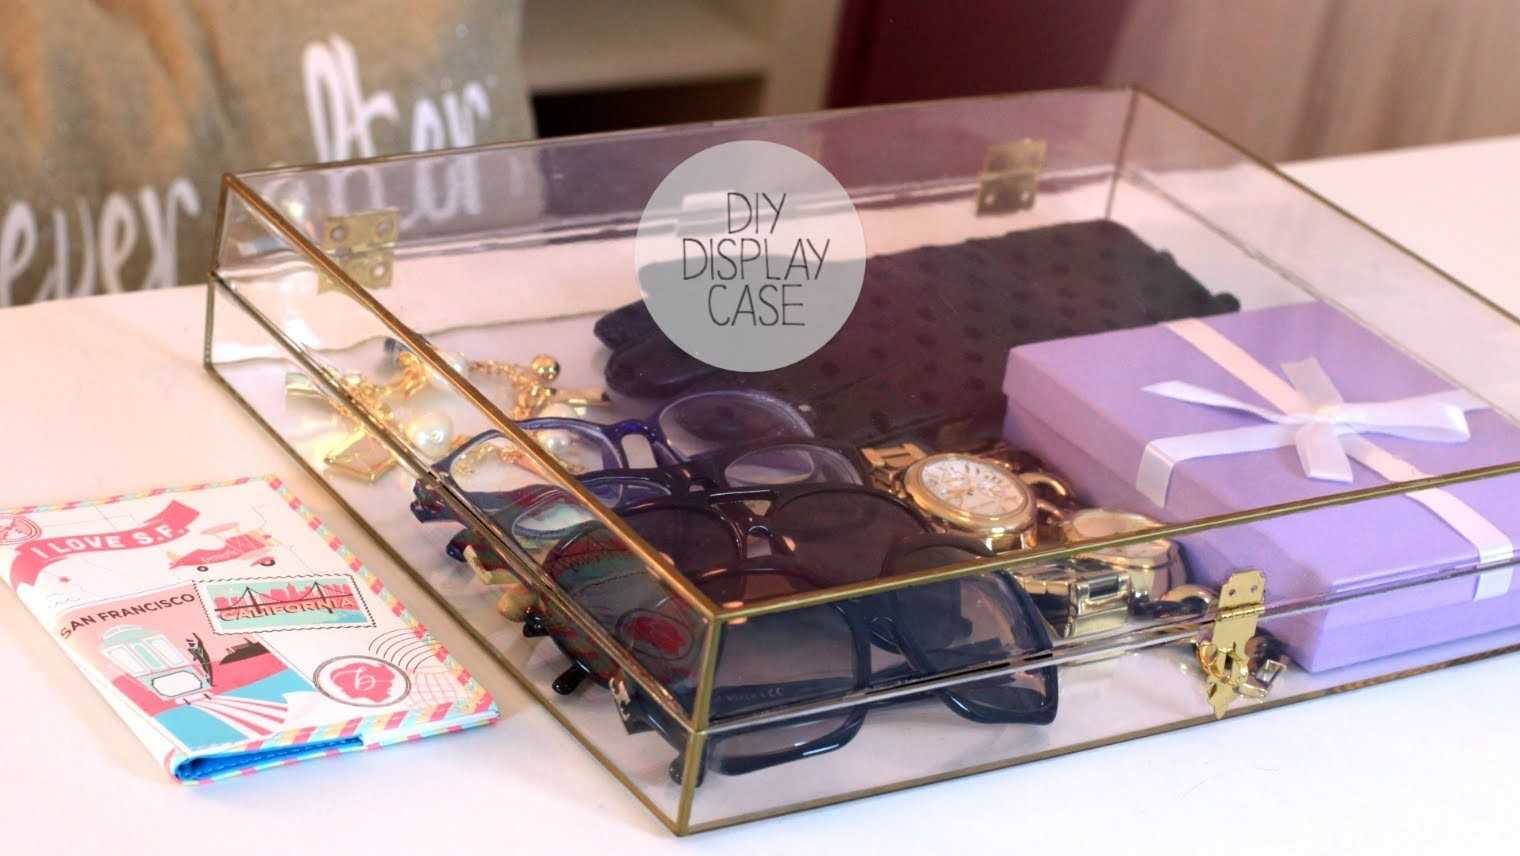 DIY Chic Display Case - Storage Decor